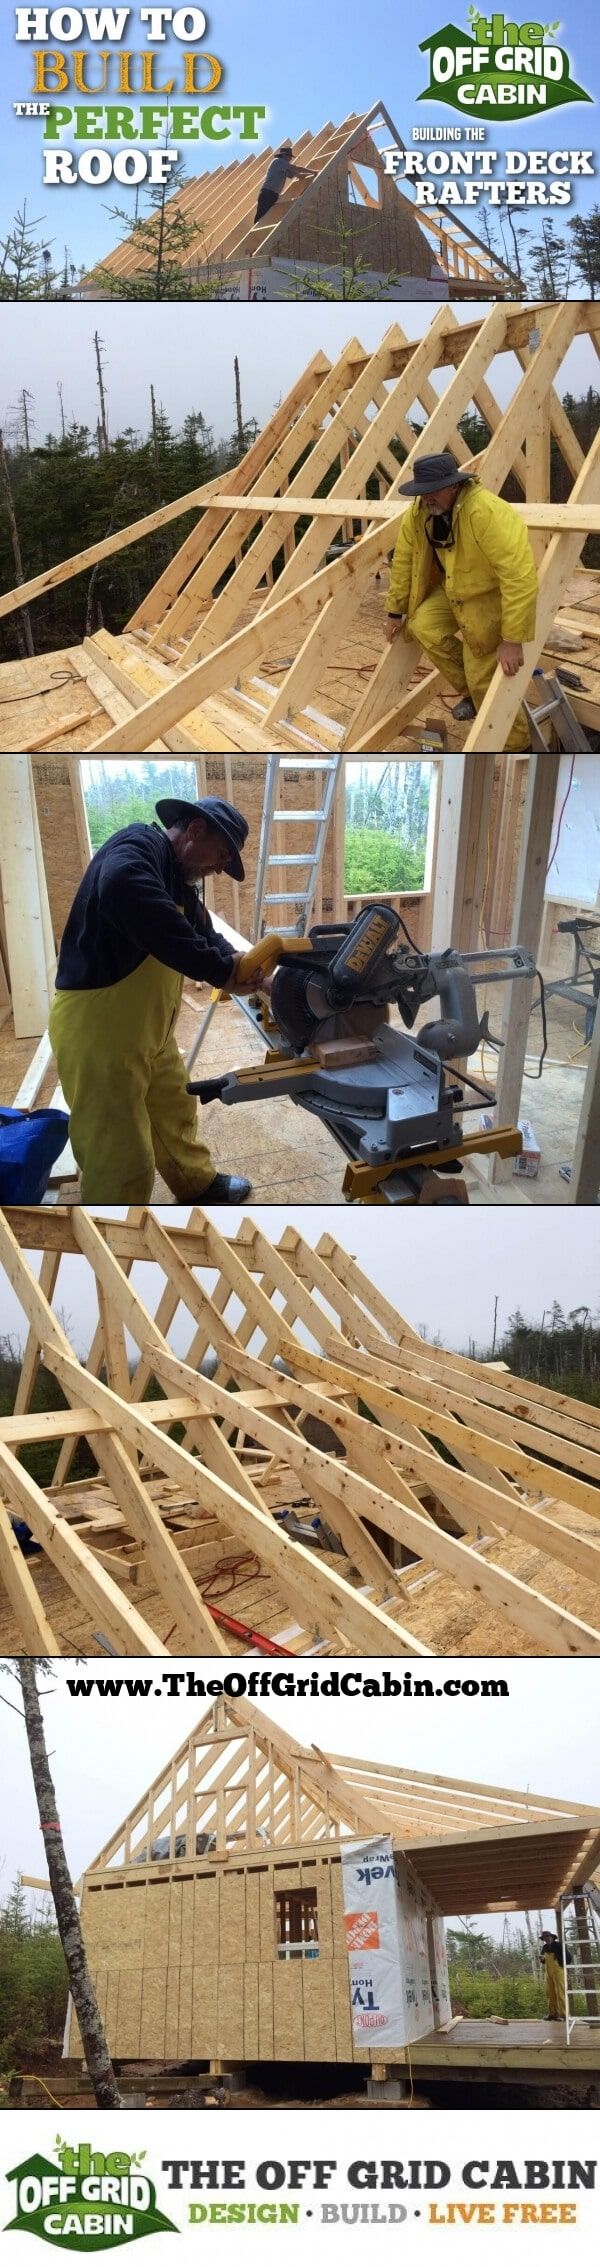 The Off Grid Cabin How To Build The Perfect Roof Deck Rafters Pinterest Image